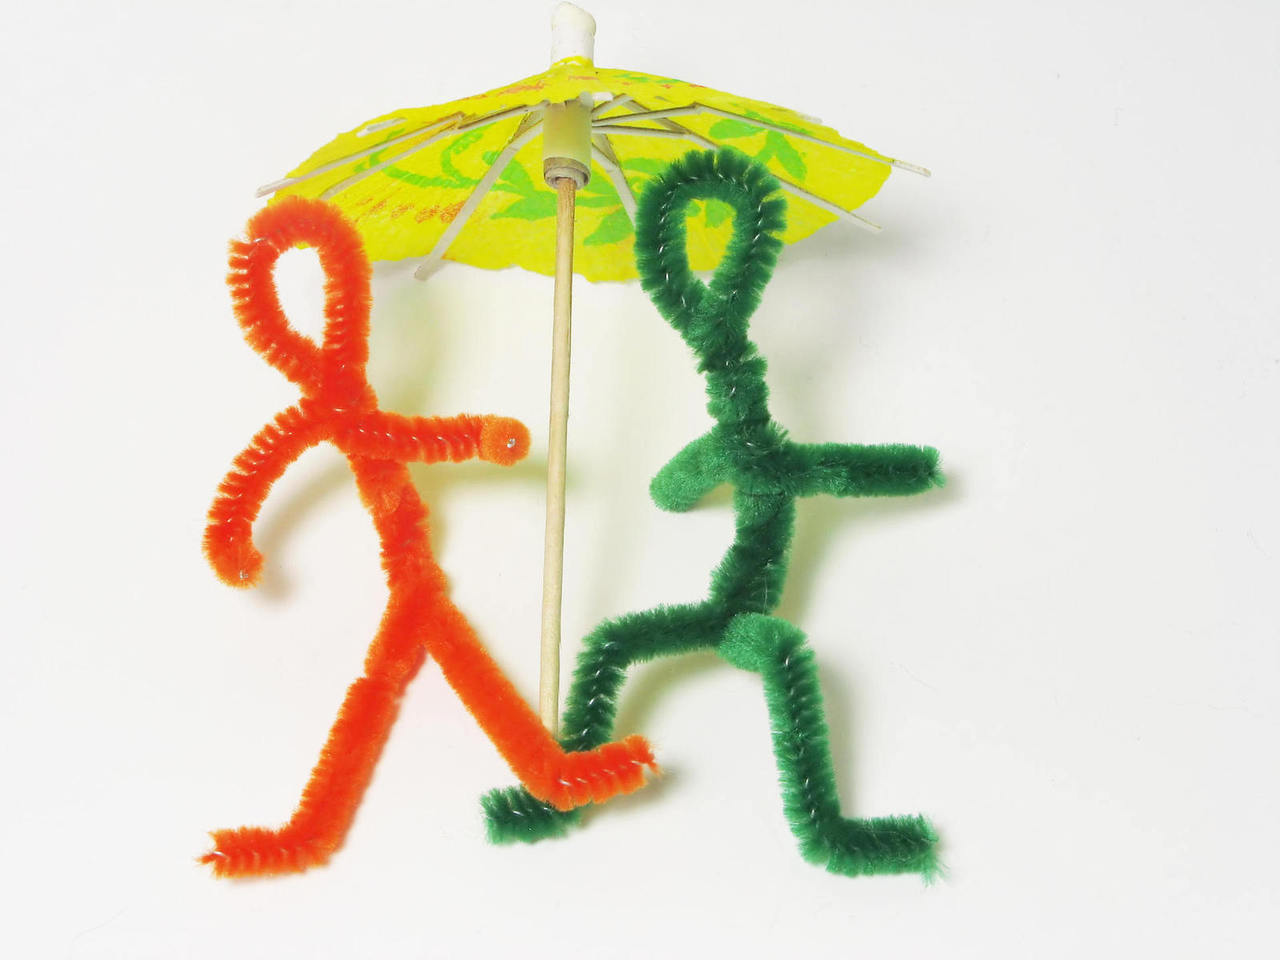 pipe-cleaner-people-1177072-1280x960